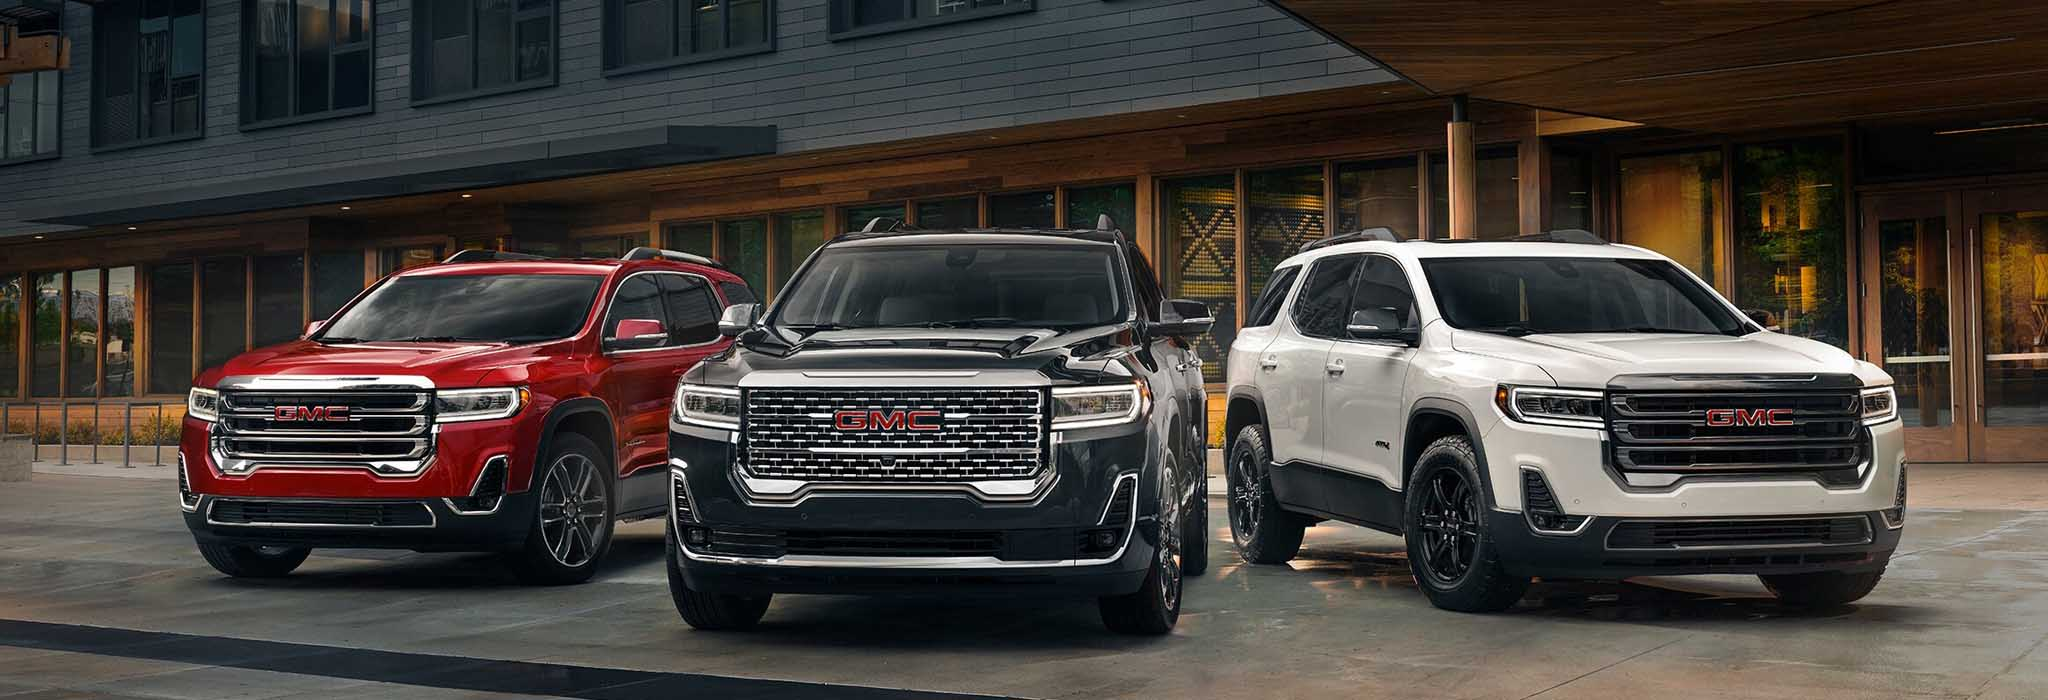 Drive the Redesigned 2020 GMC Acadia SUV in New Iberia, Louisiana